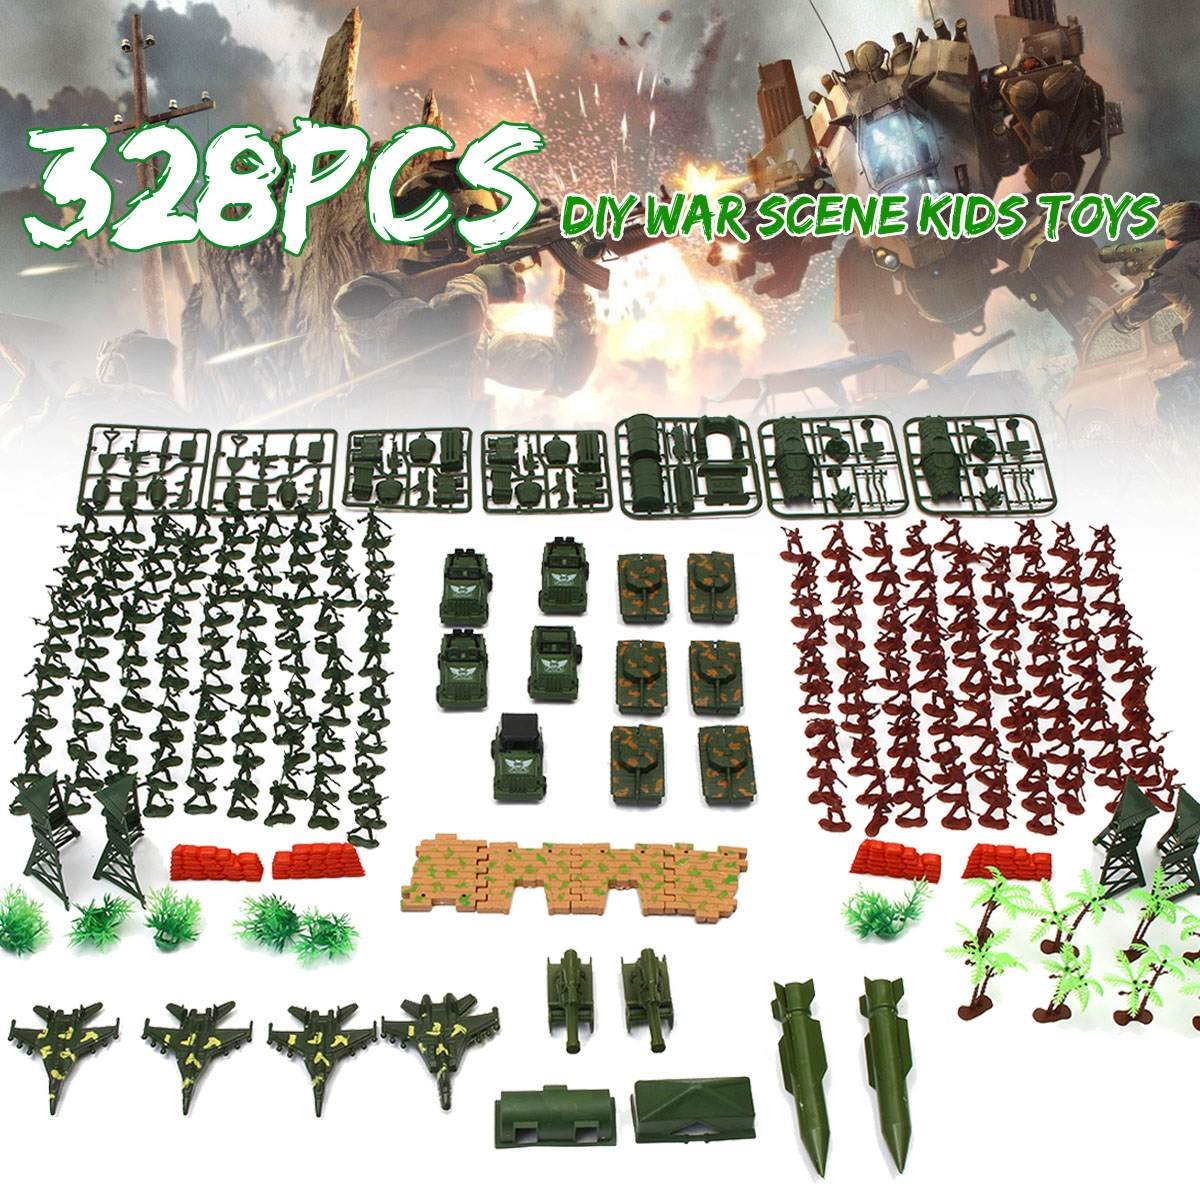 328Pcs 4cm Soldier Model Sandbox Game Military Plastic Toy Soldier Army Men Playset Kit Gift Model Toy For Kids Boys